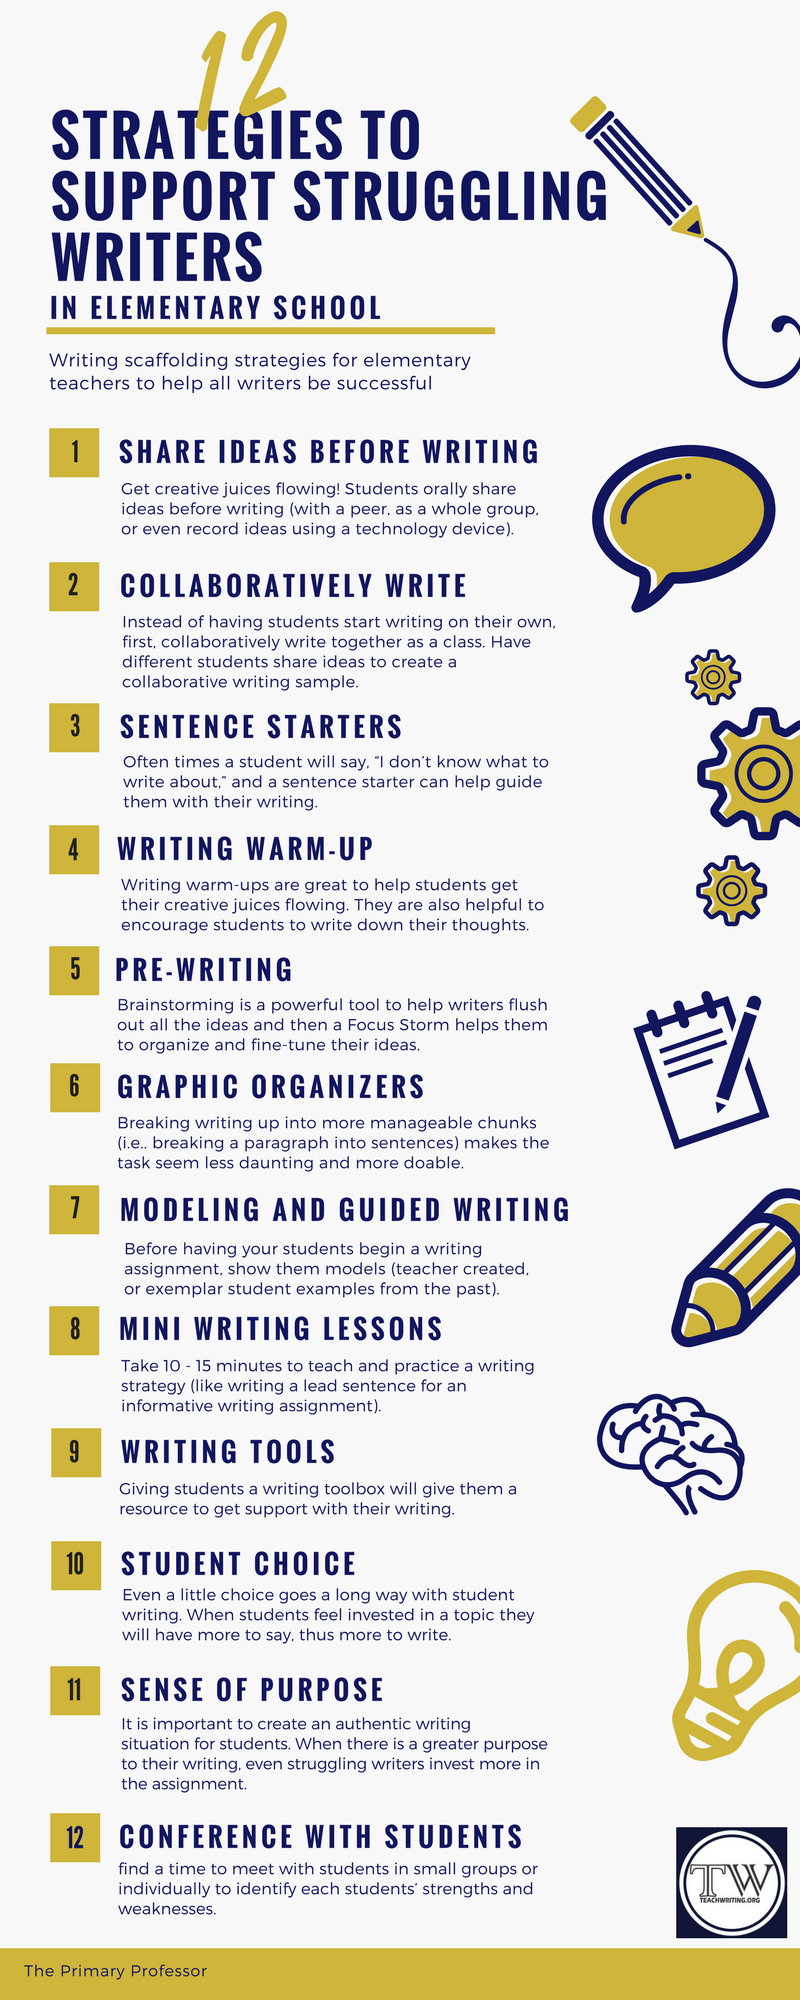 12 Strategies to Support Struggling Writers Infographic